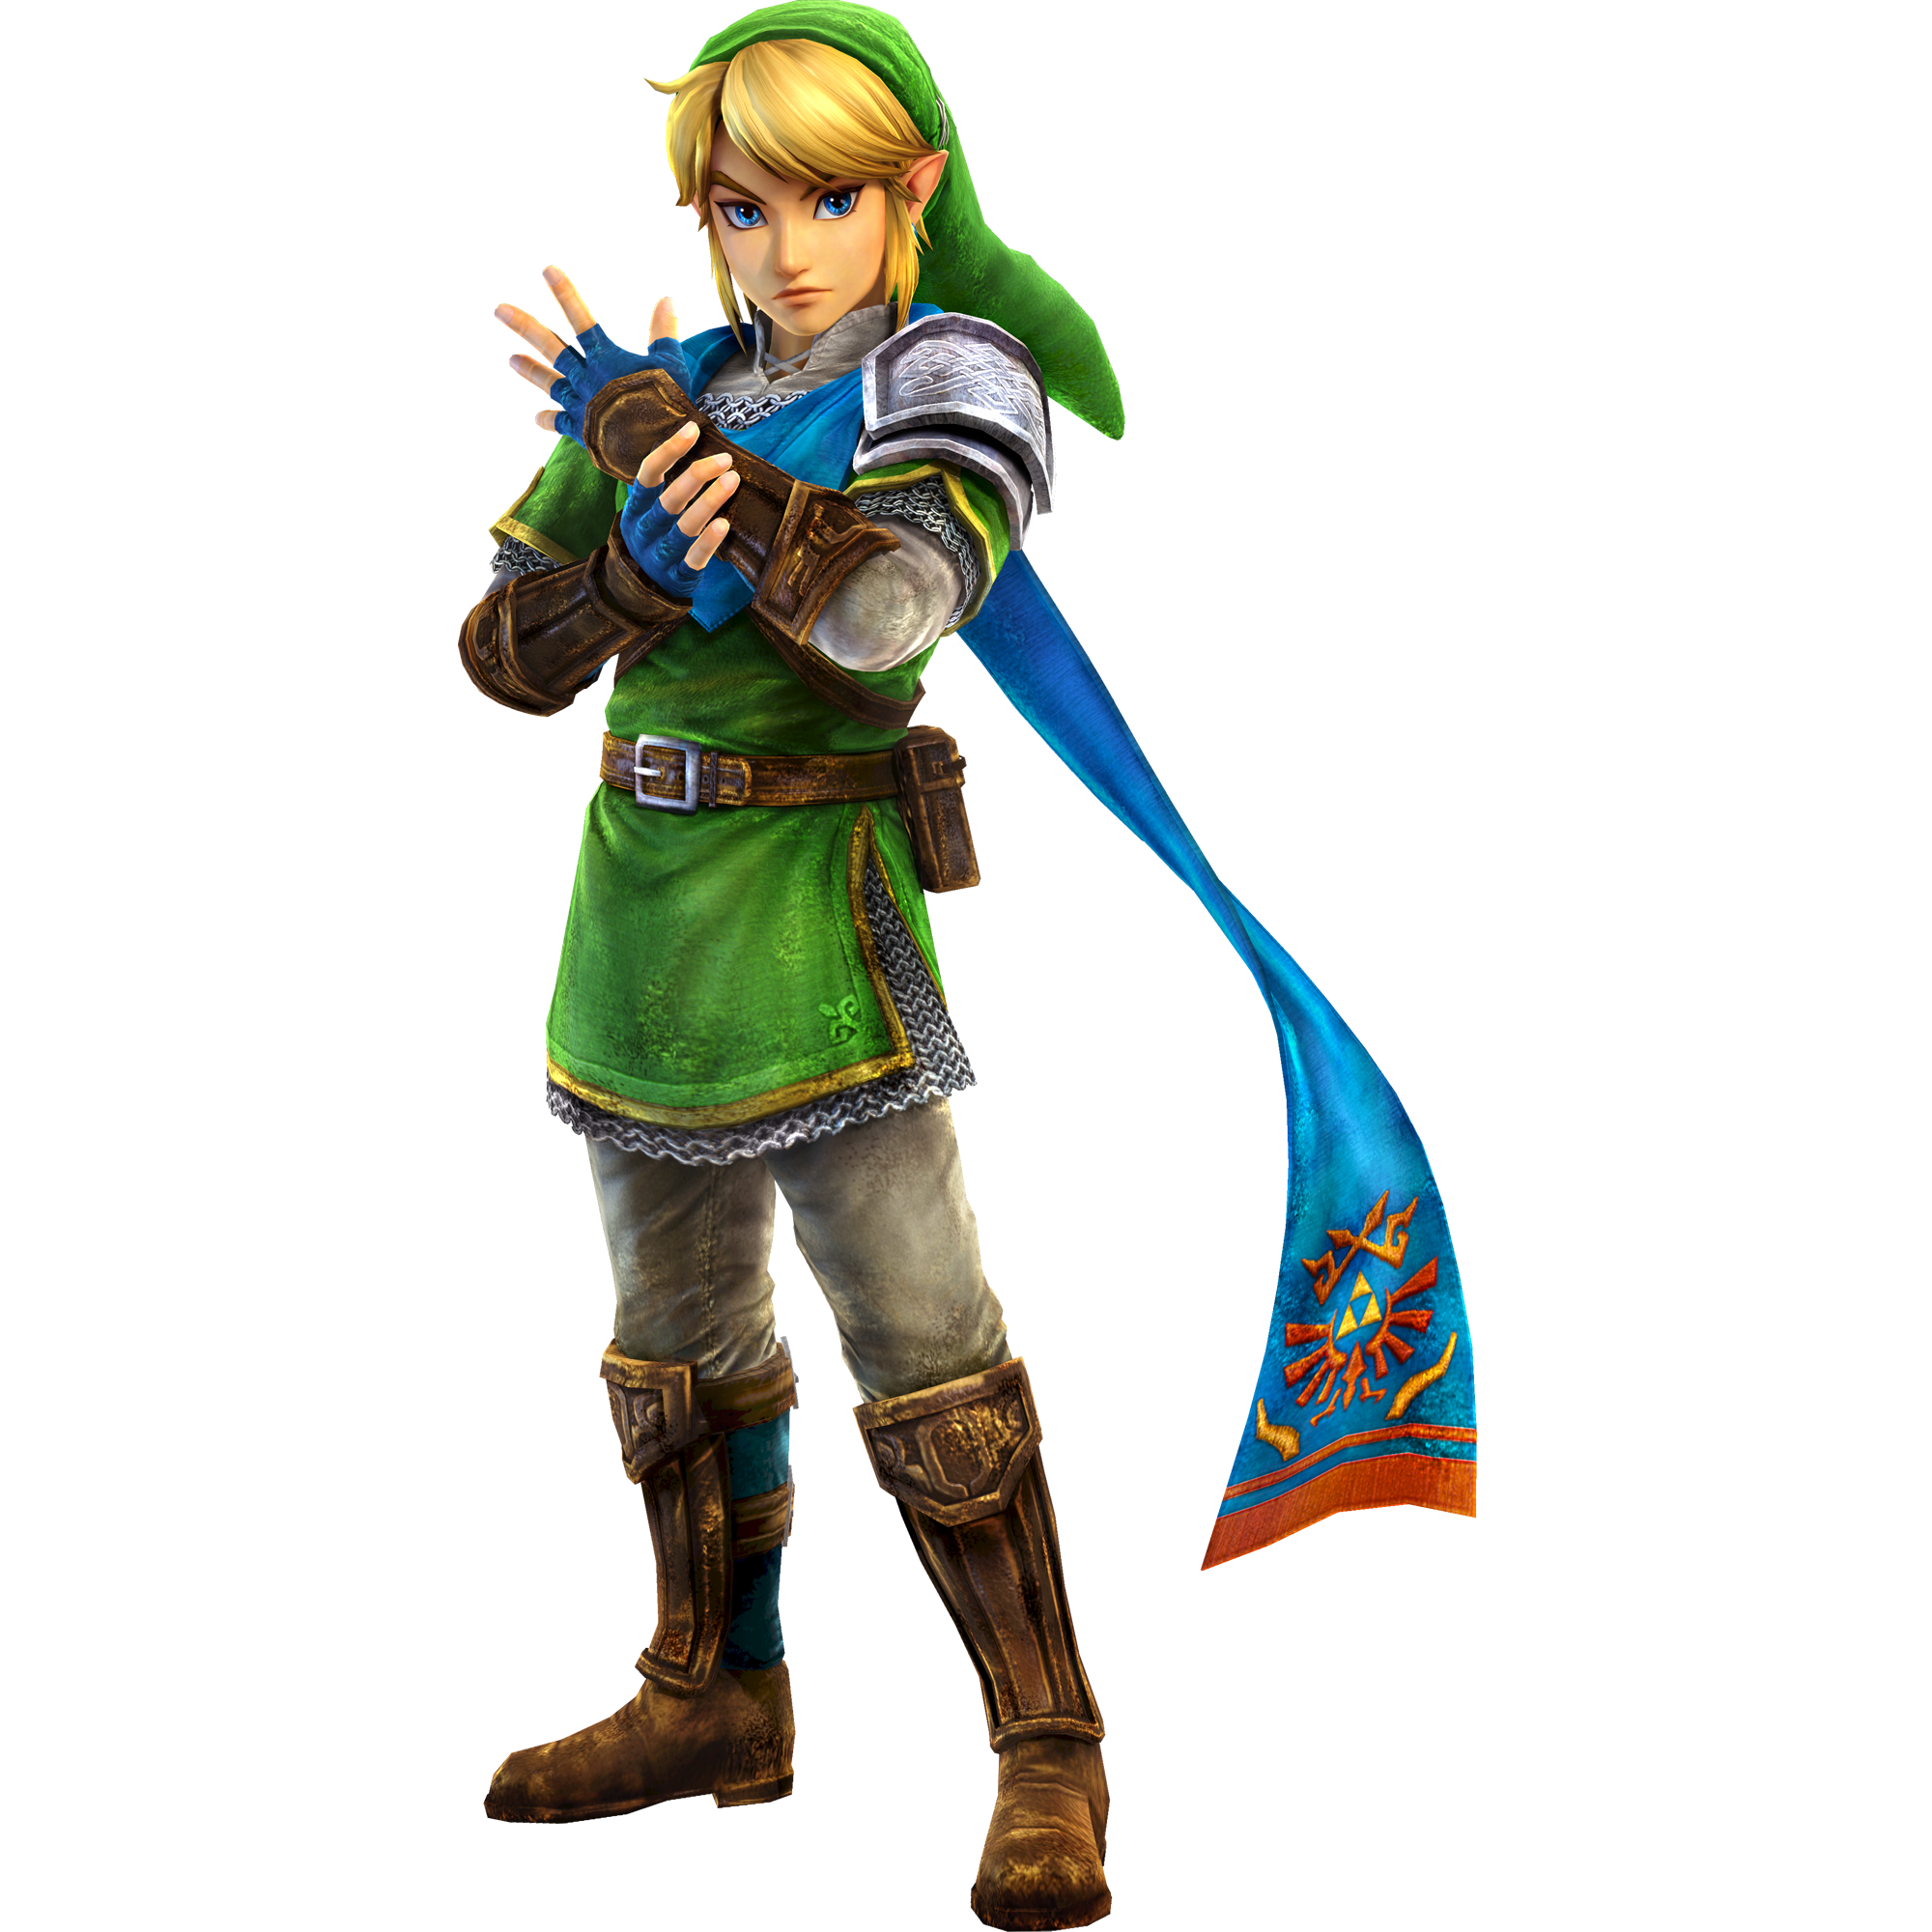 Link png. Image omniversal battlefield wiki